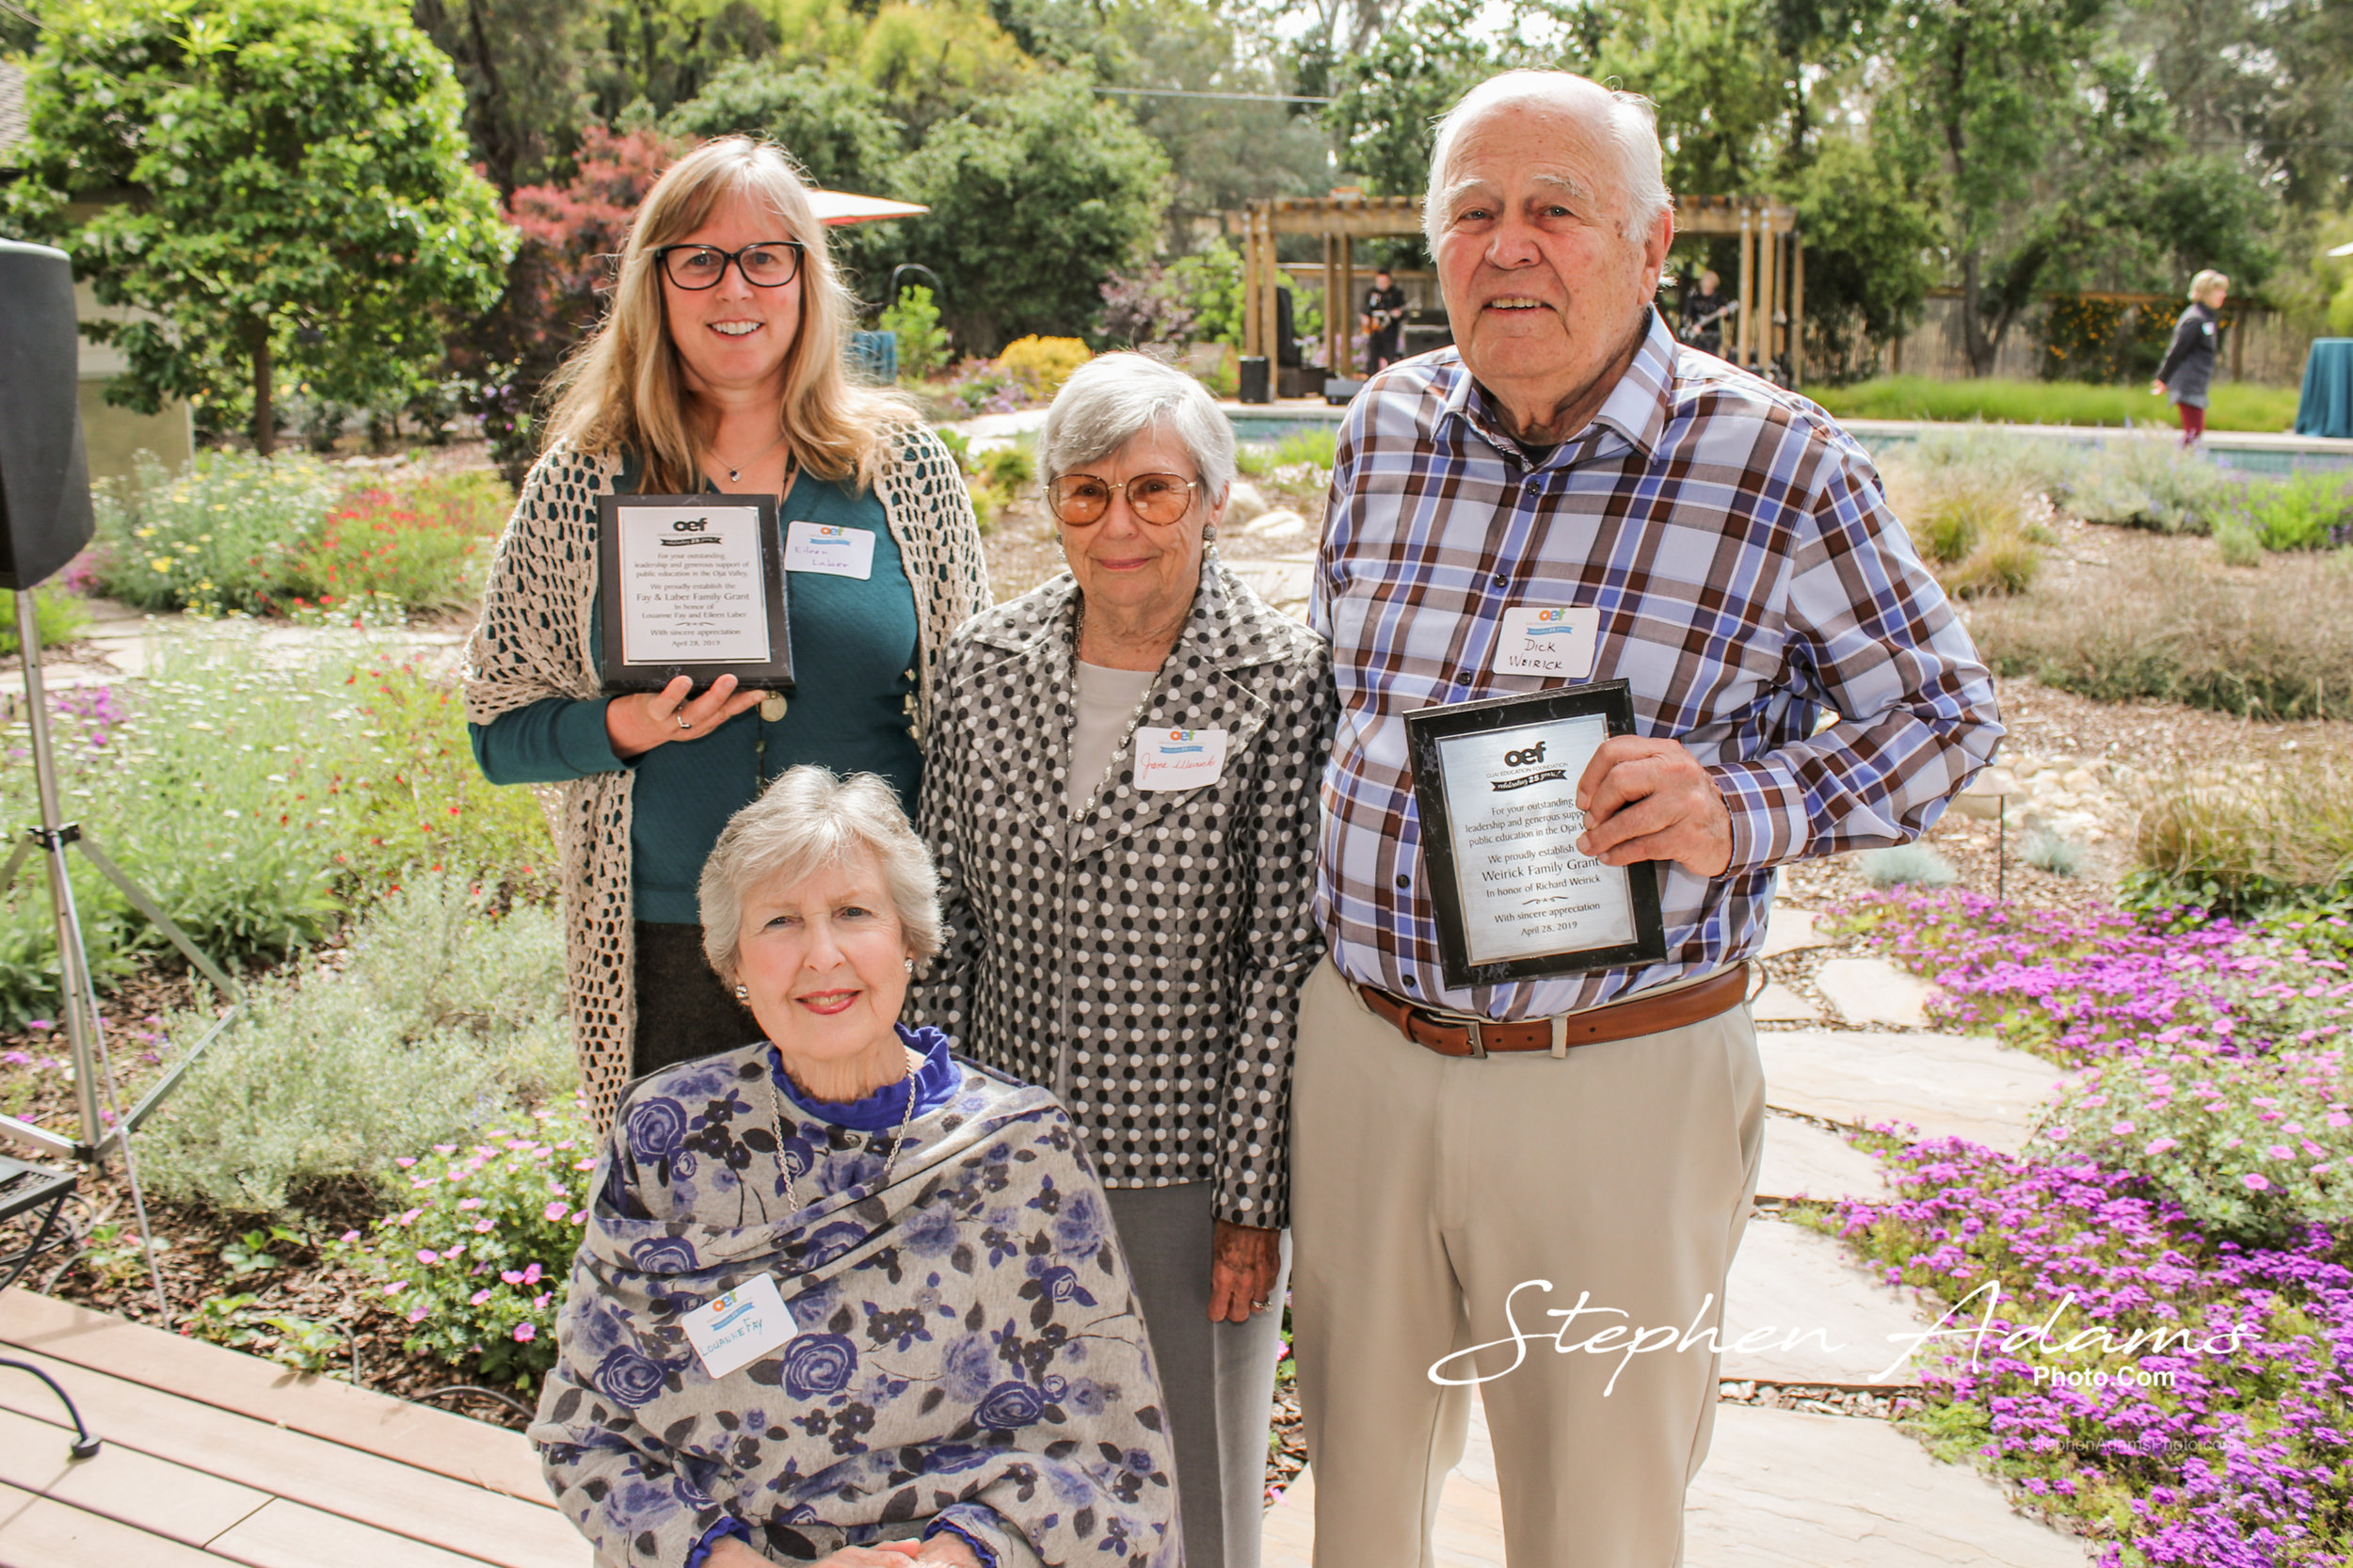 The honorees of the celebration, from left to right, top cumulative donors Eileen Laber and Louanne Fay, Jane Weirick and founding treasurer Dick Weirick. Photo by Stephen Adams.